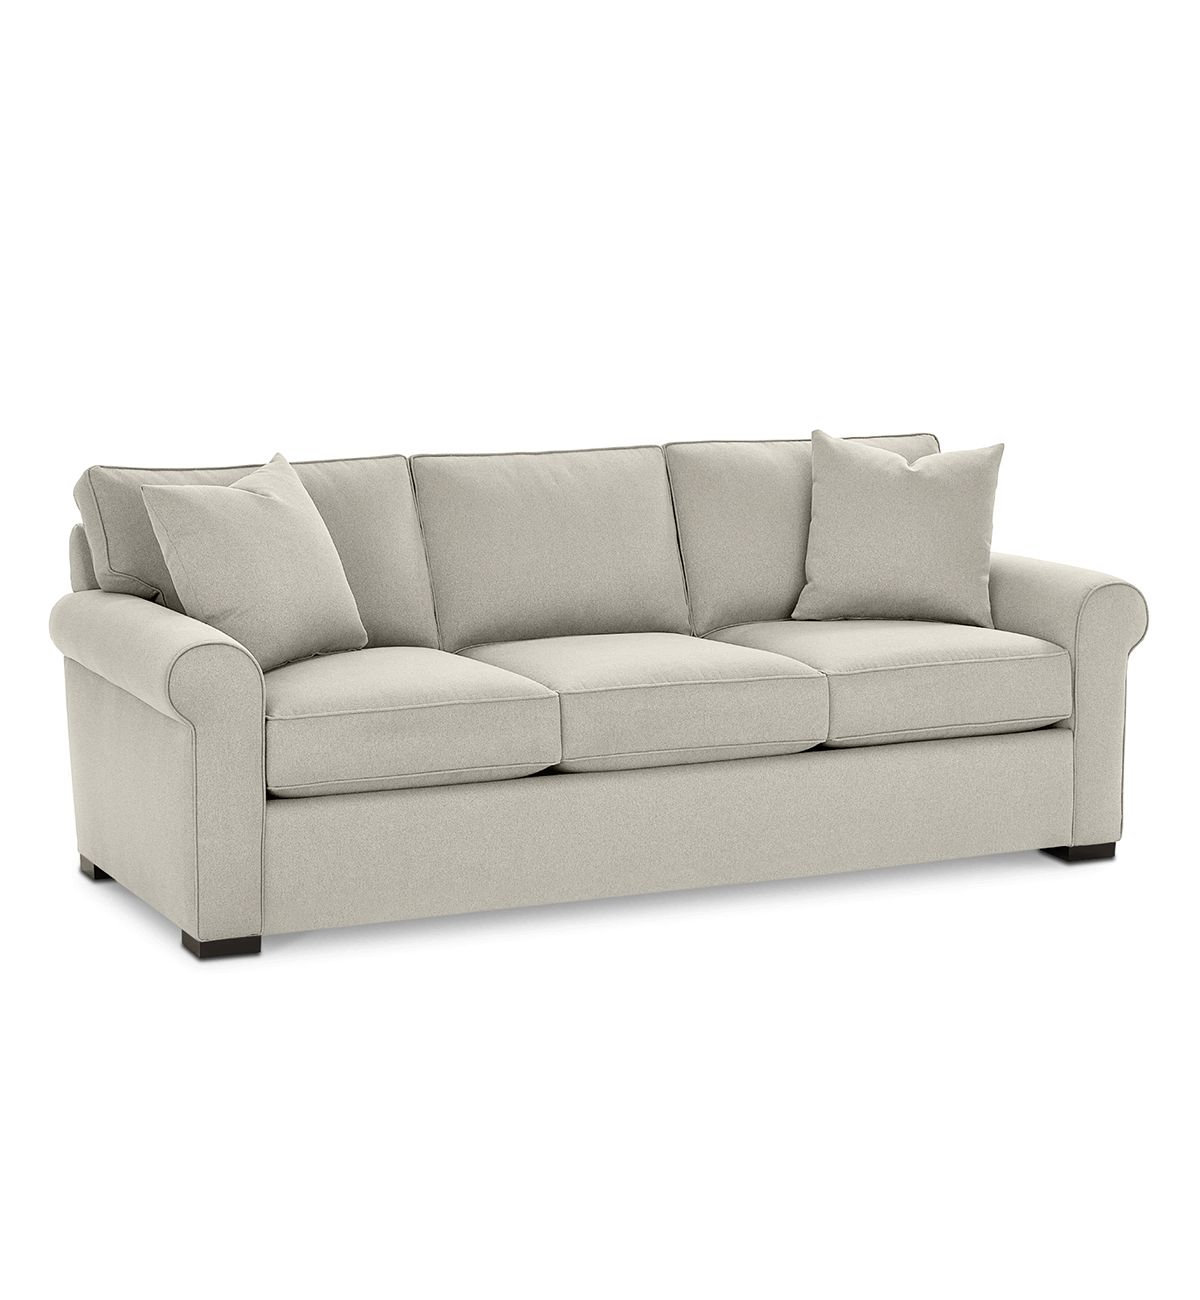 Couches Sofas